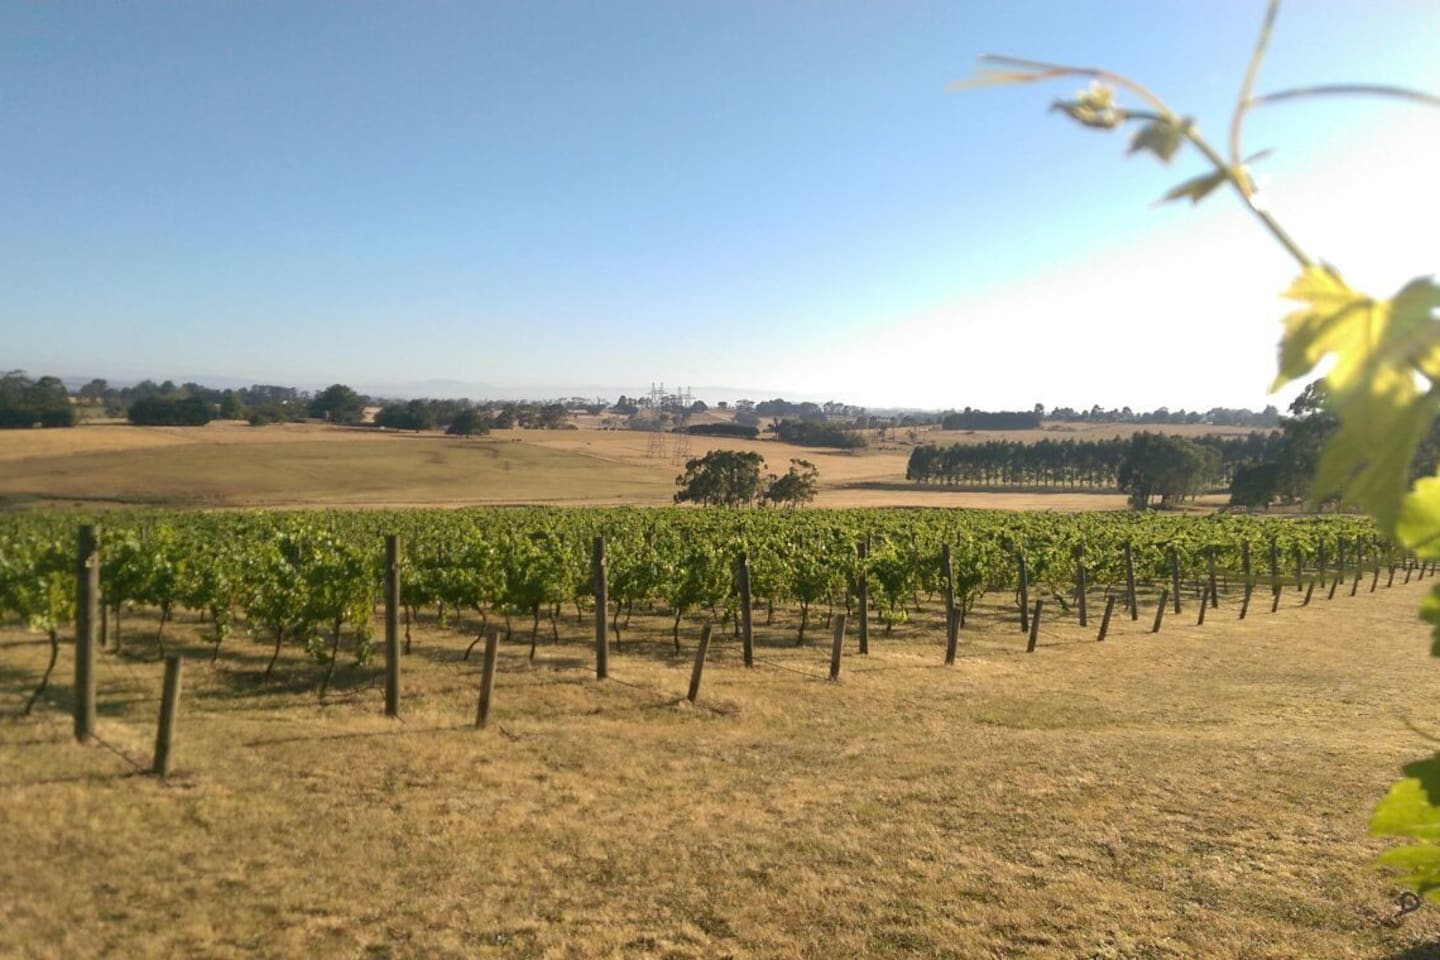 Views over the vineyard and to Mount Baw Baw